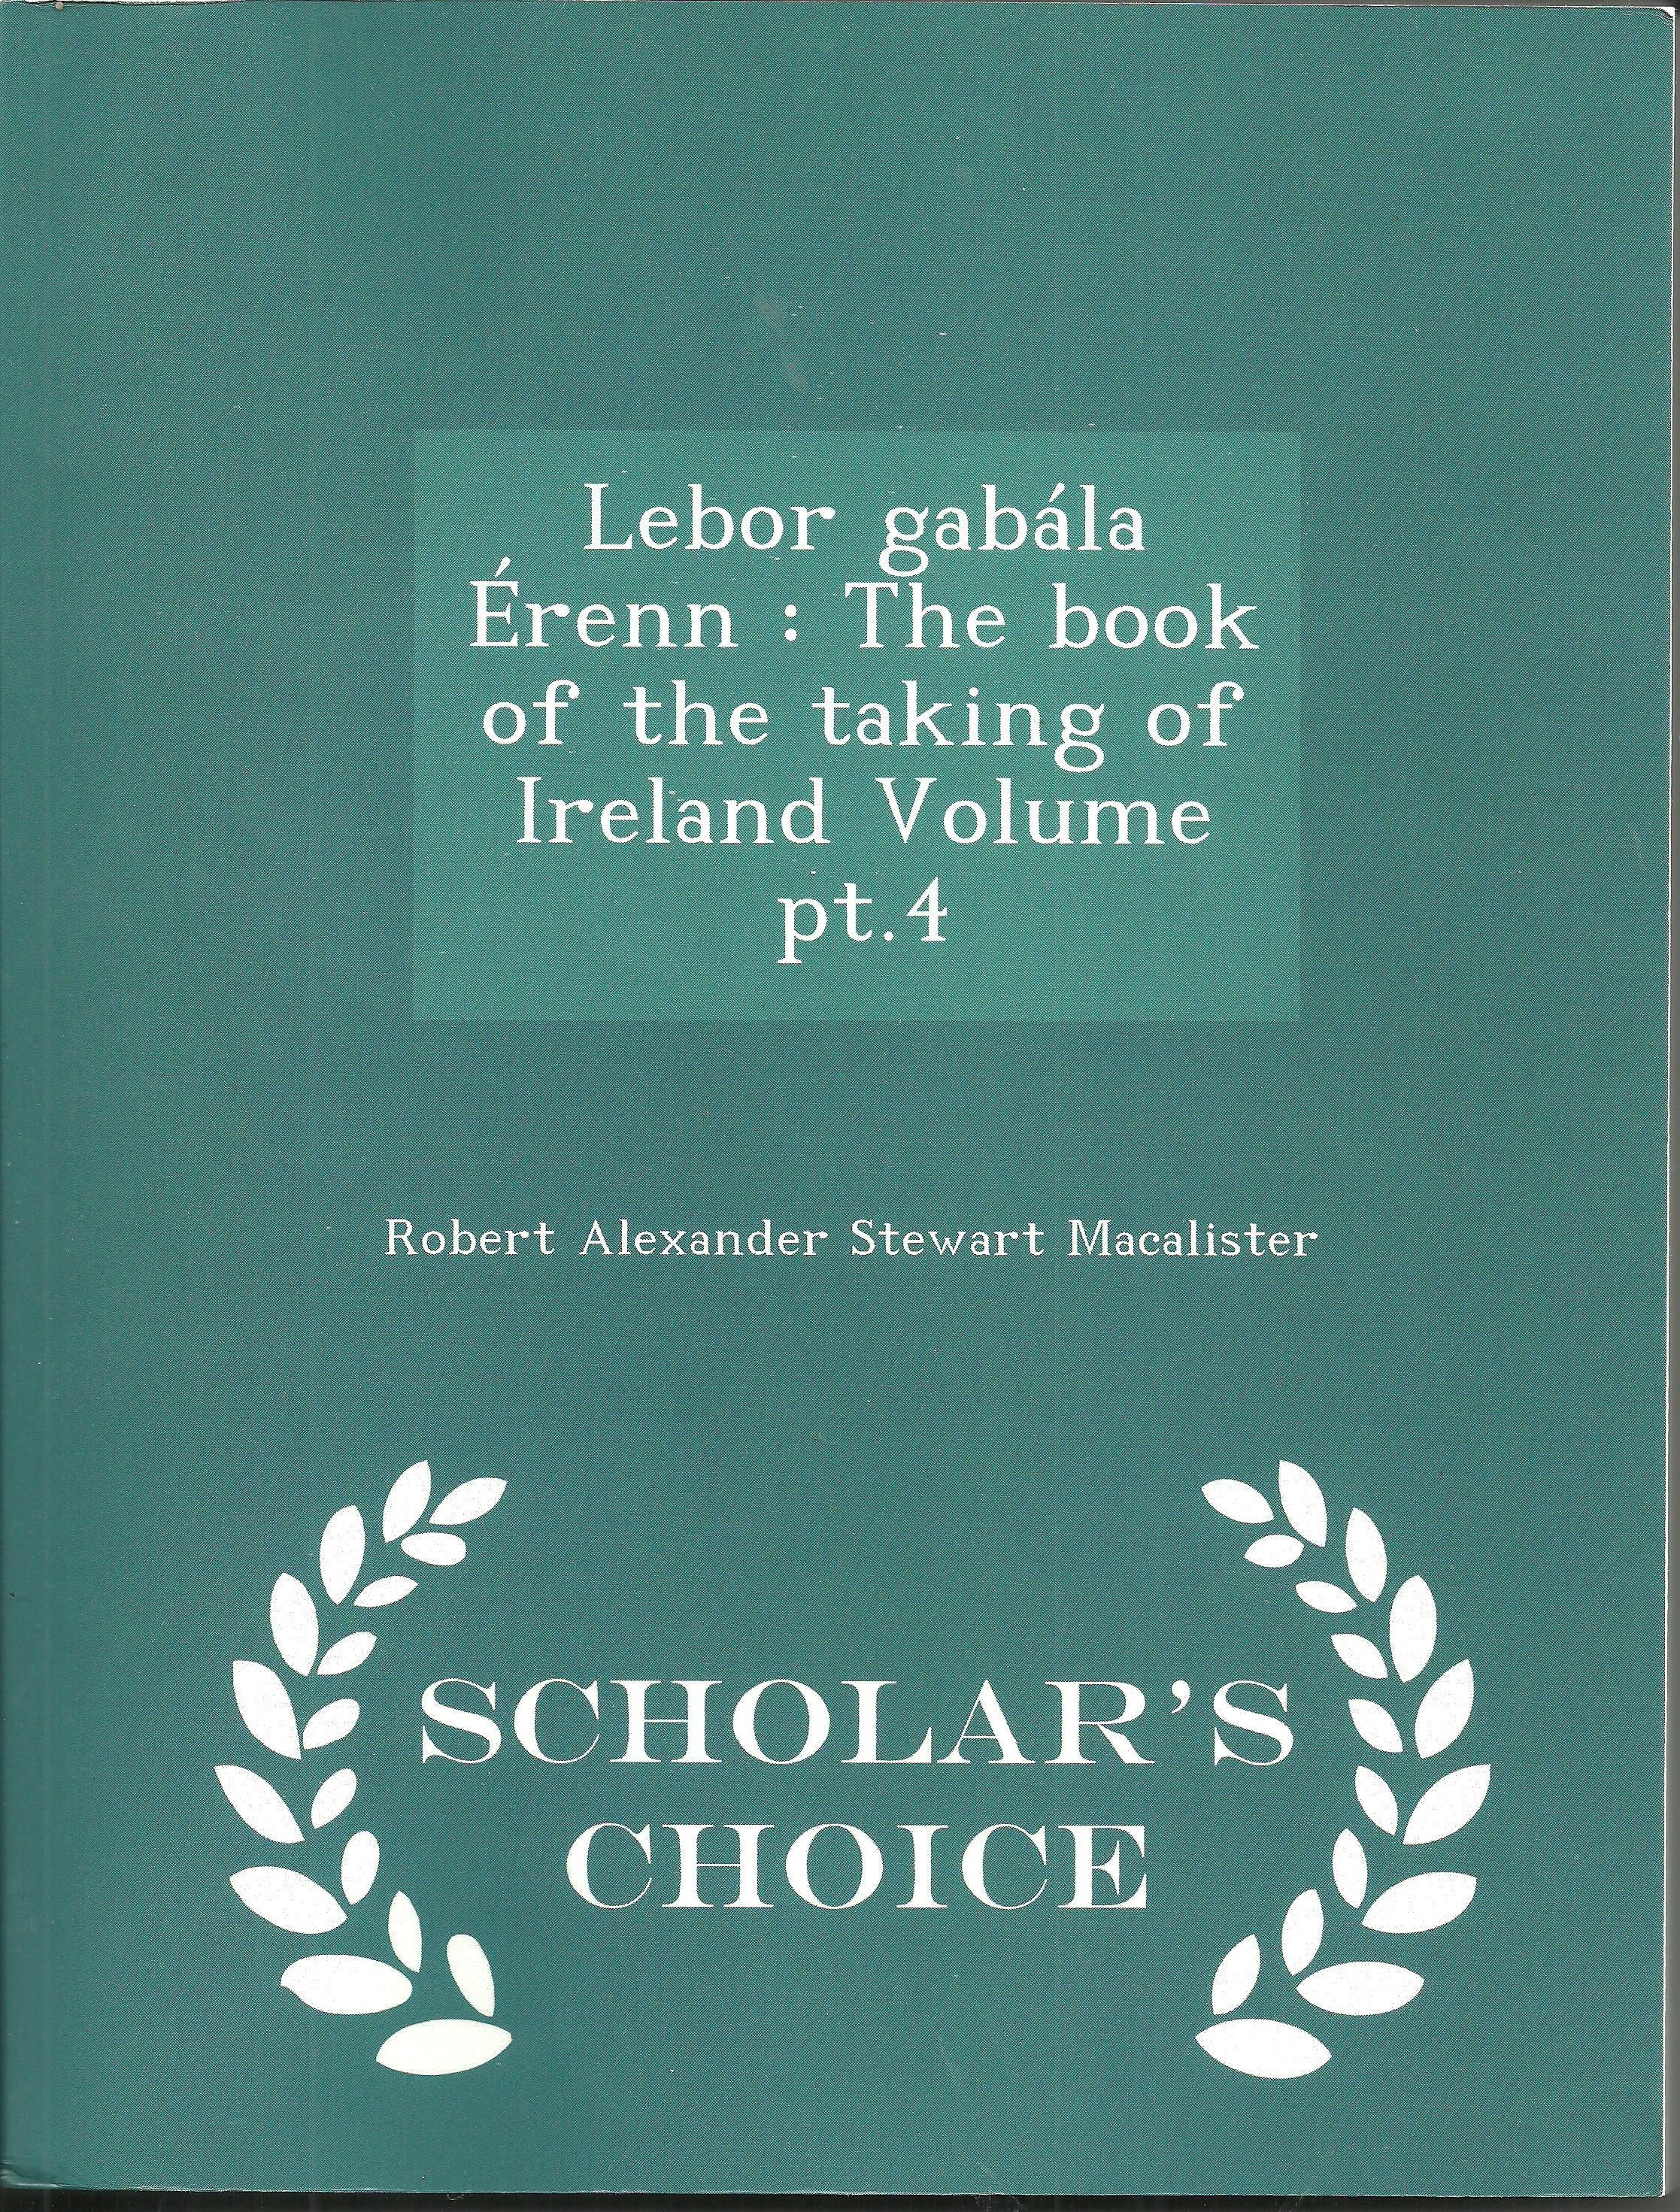 The Book of the Taking of Ireland, Vol 4, by Robert Alexander and Stewart Macalister